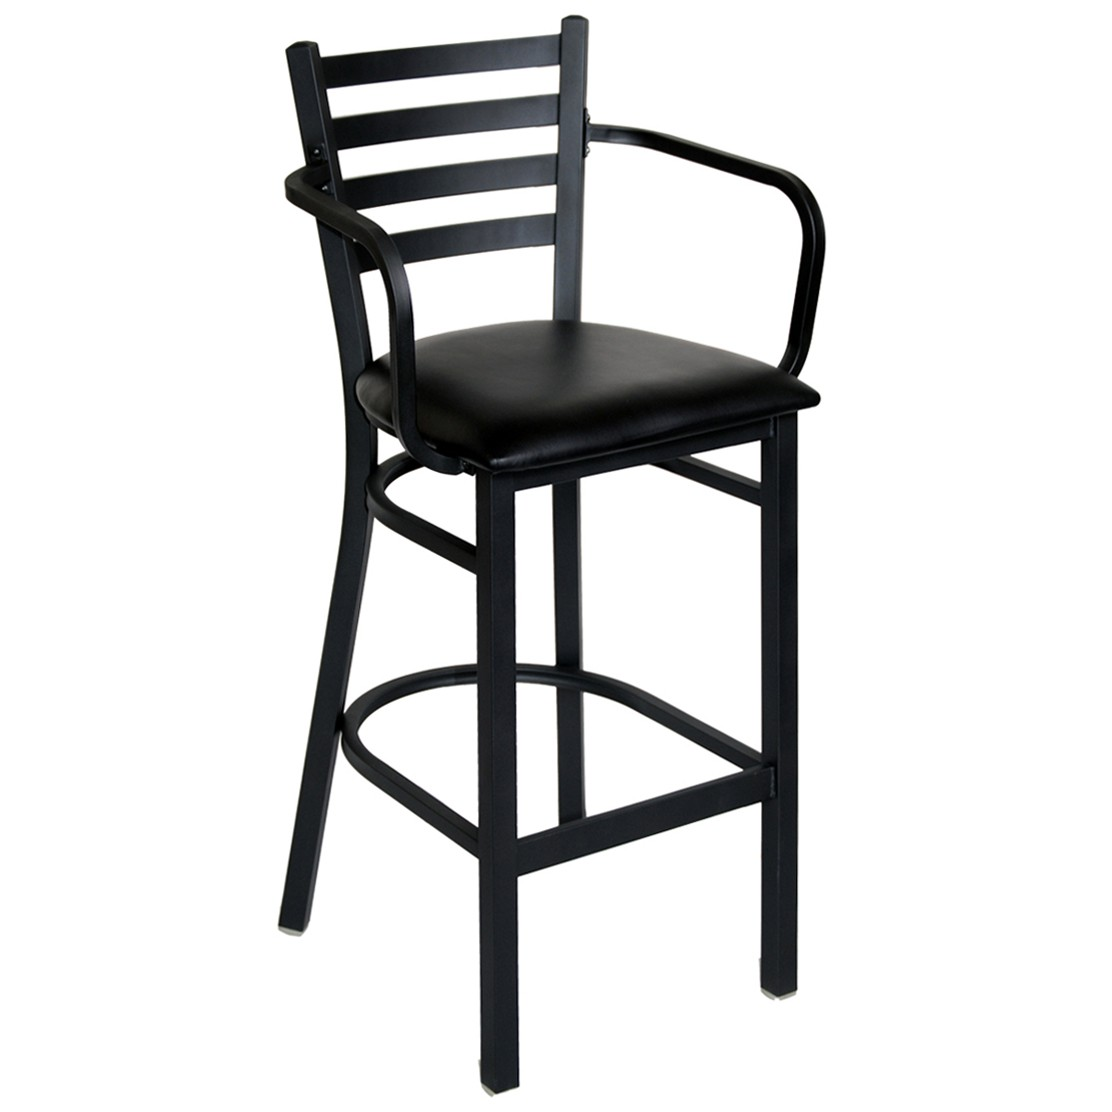 Ladder back metal bar stool with arms for Bar stools with arms